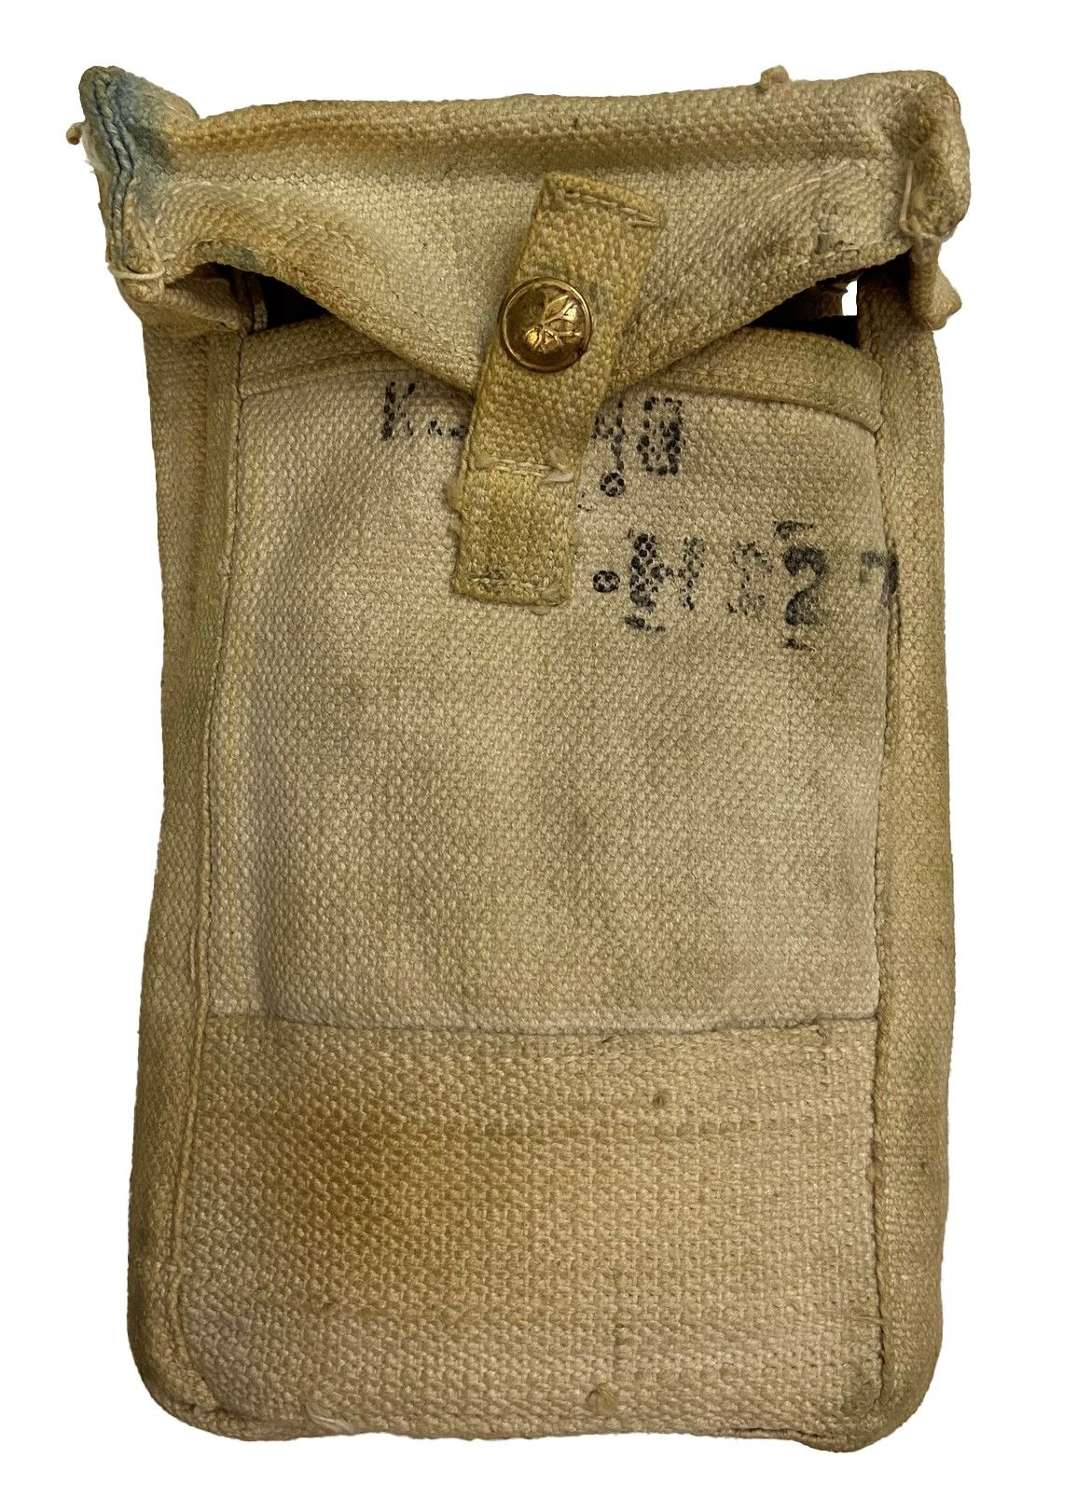 Original 1940 Dated Indian Made MKI Universal Pouch